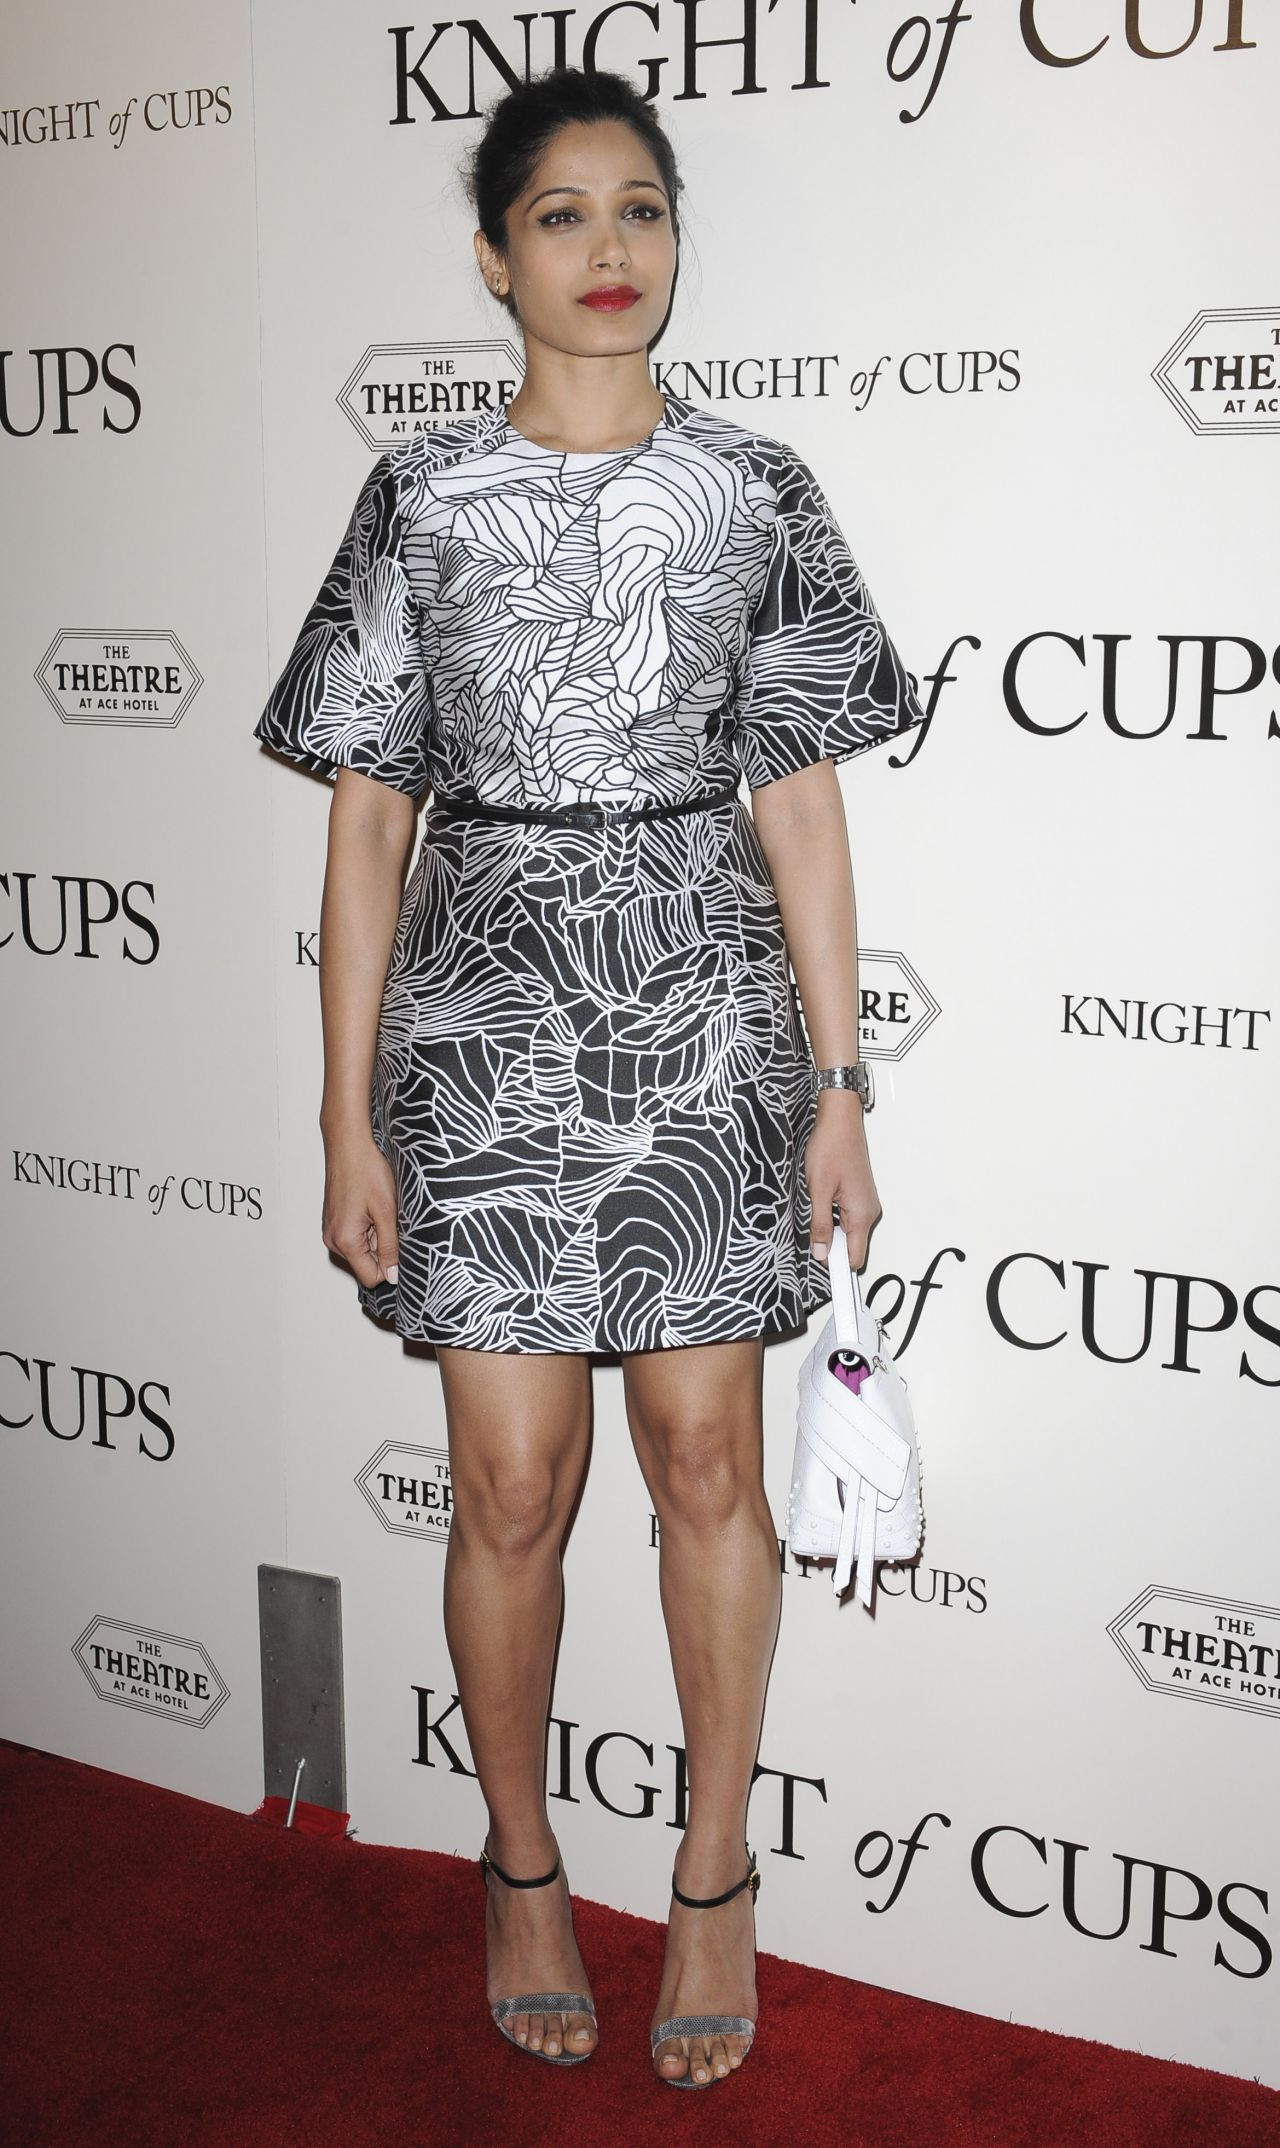 freida-pinto-knight-of-cups-premiere-in-los-angeles-ca-3